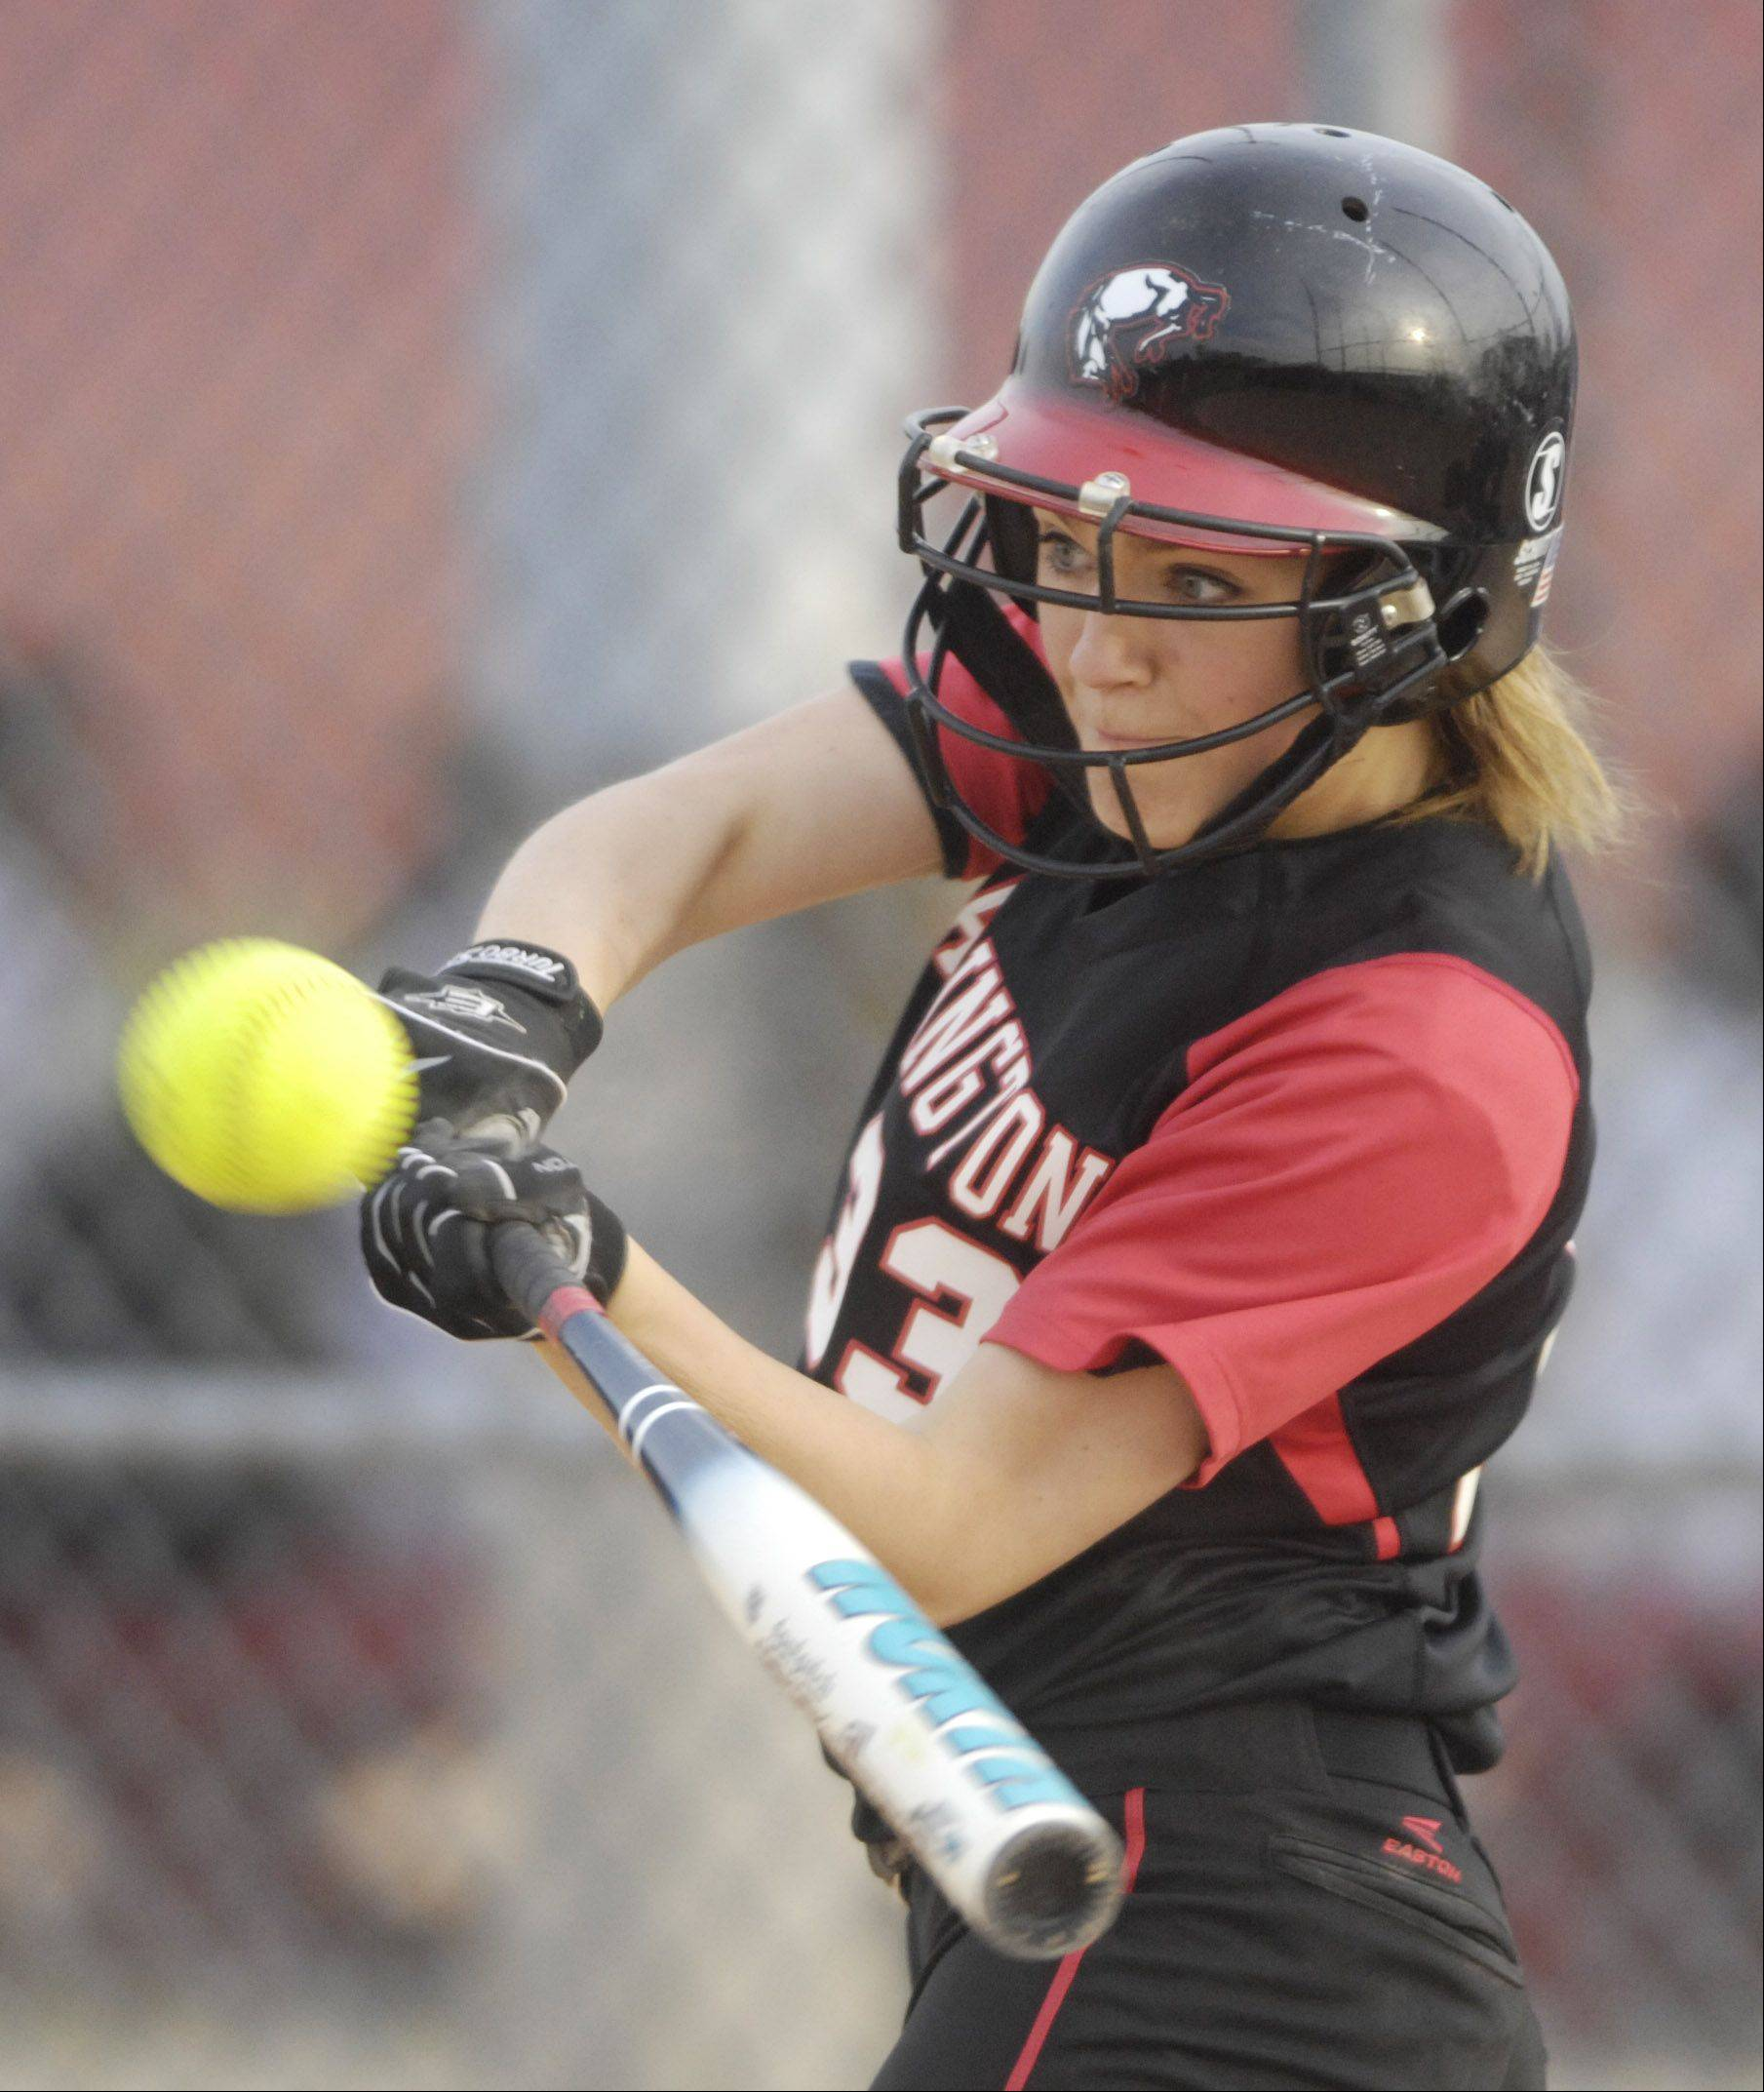 Barrington's Kelsey Kazmier makes contact during Tuesday's game against Burlington Central.